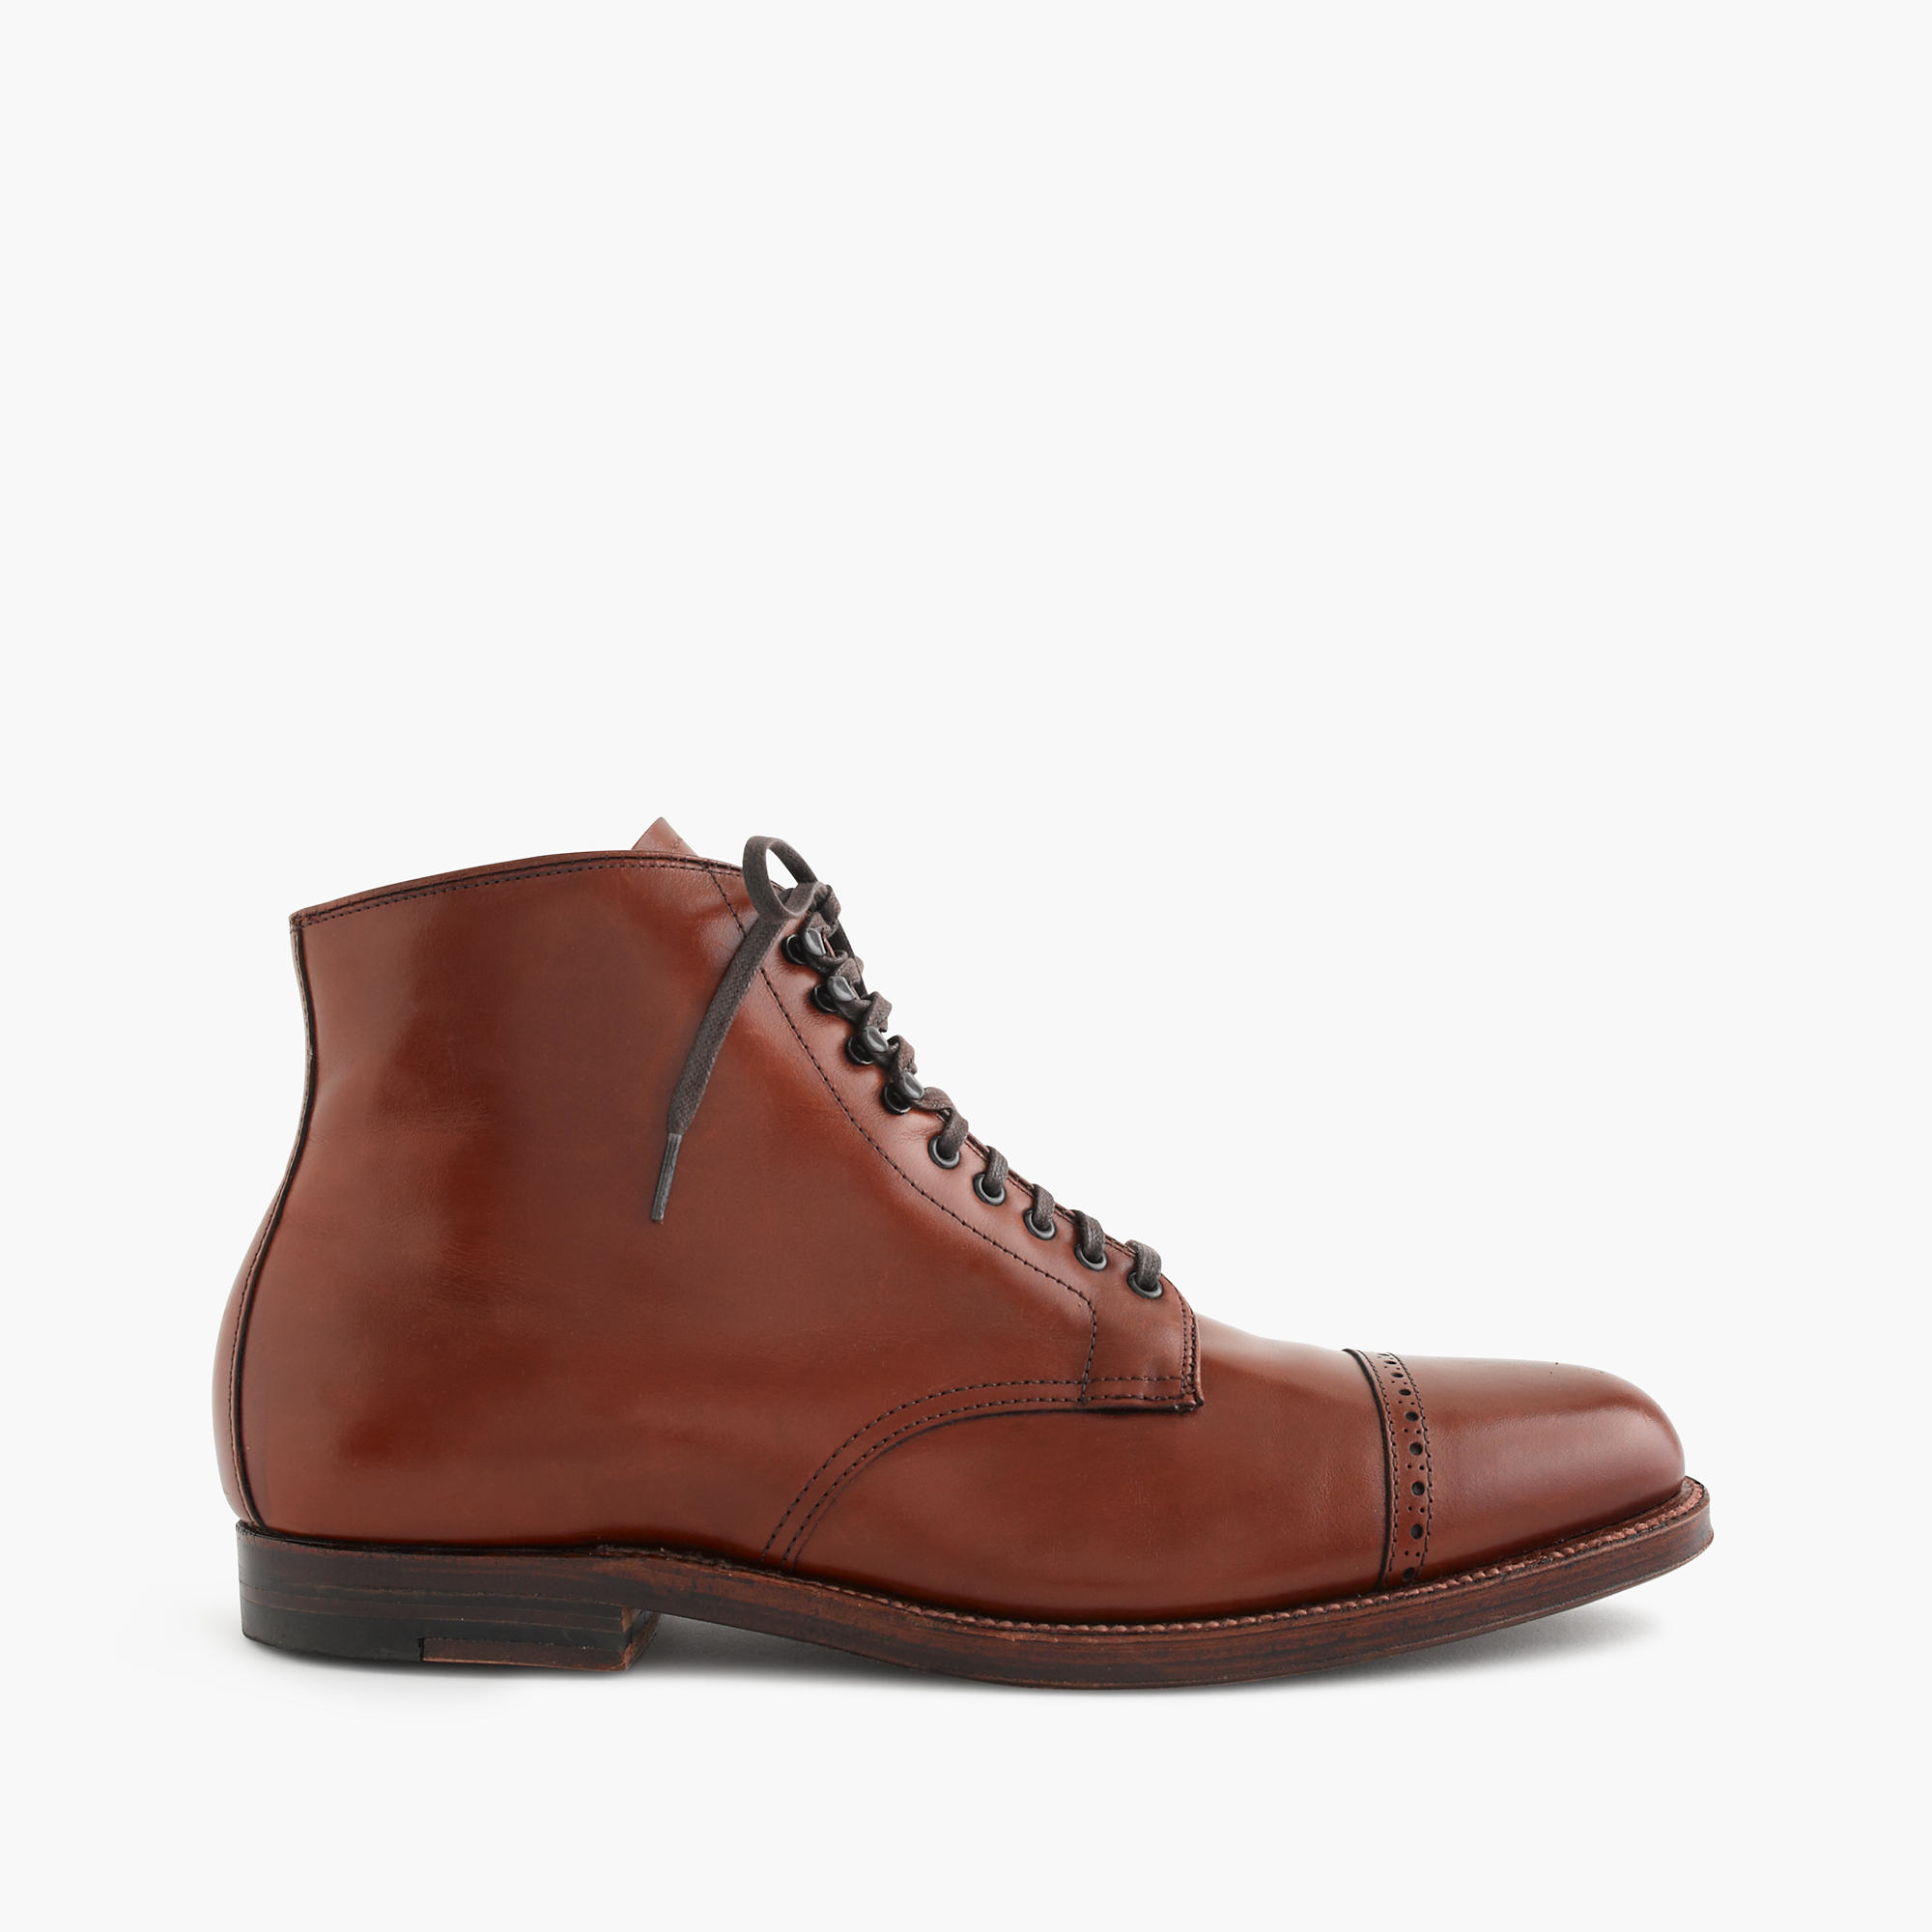 Alden straight tip boots in brown for men lyst for The alden